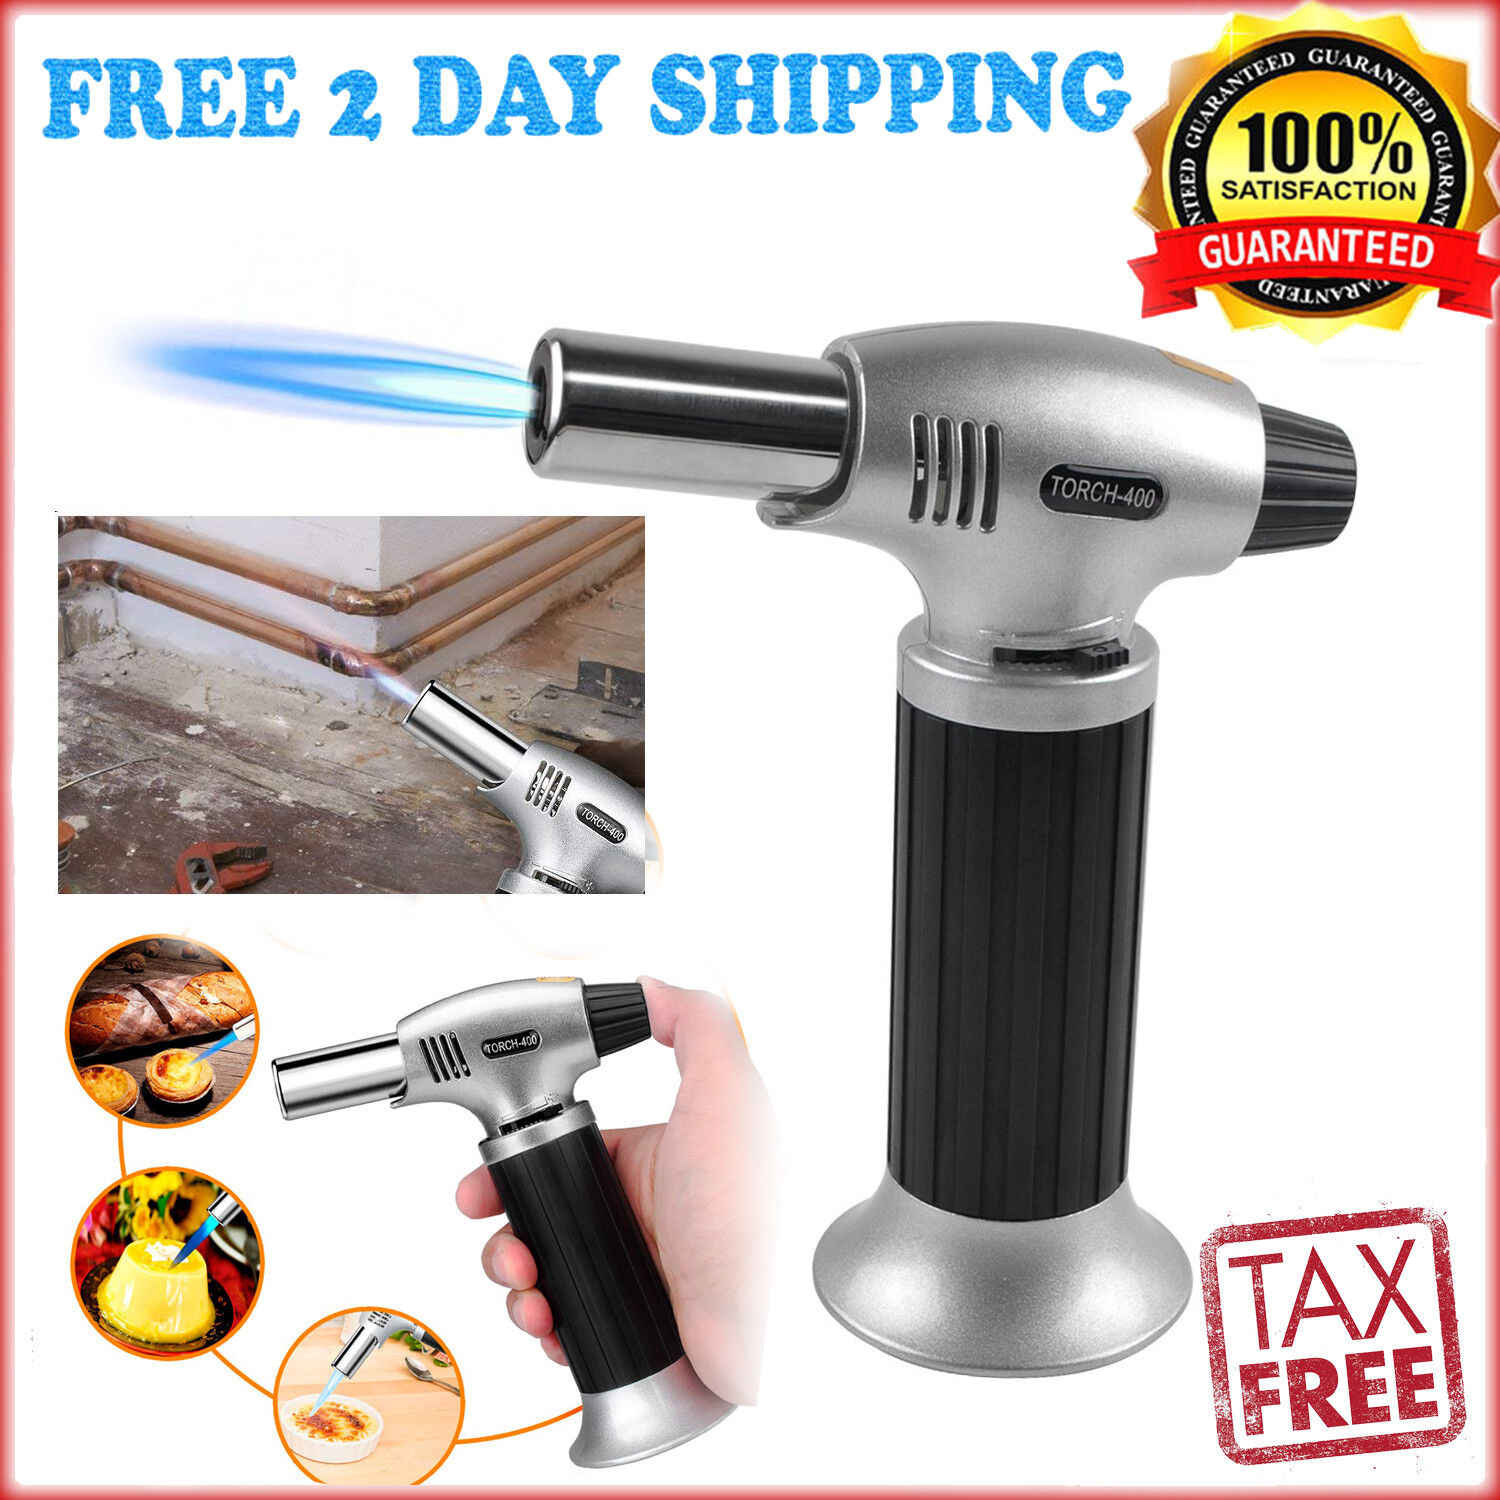 Torch Butane Lighter Kitchen Cooking Chef Culinary Fuel Gaug